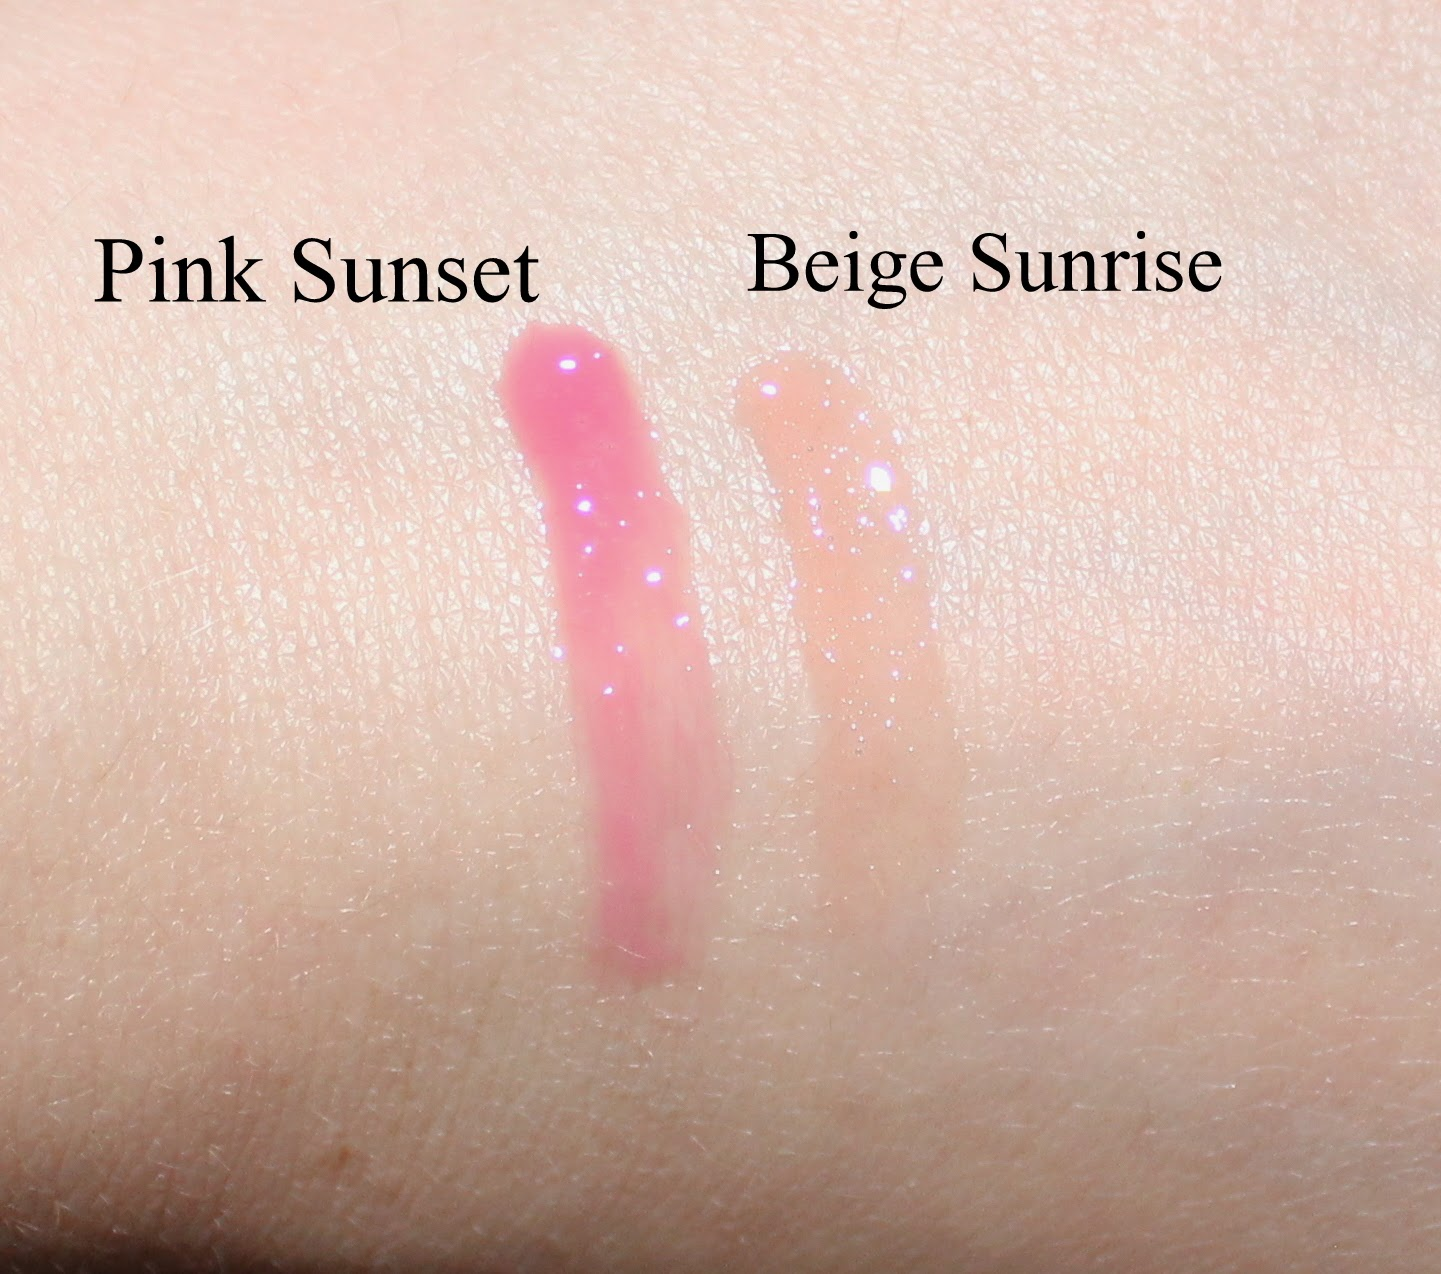 Dior Addict Lip Maximizer in Beige Sunrise & Pink Sunset Swatches